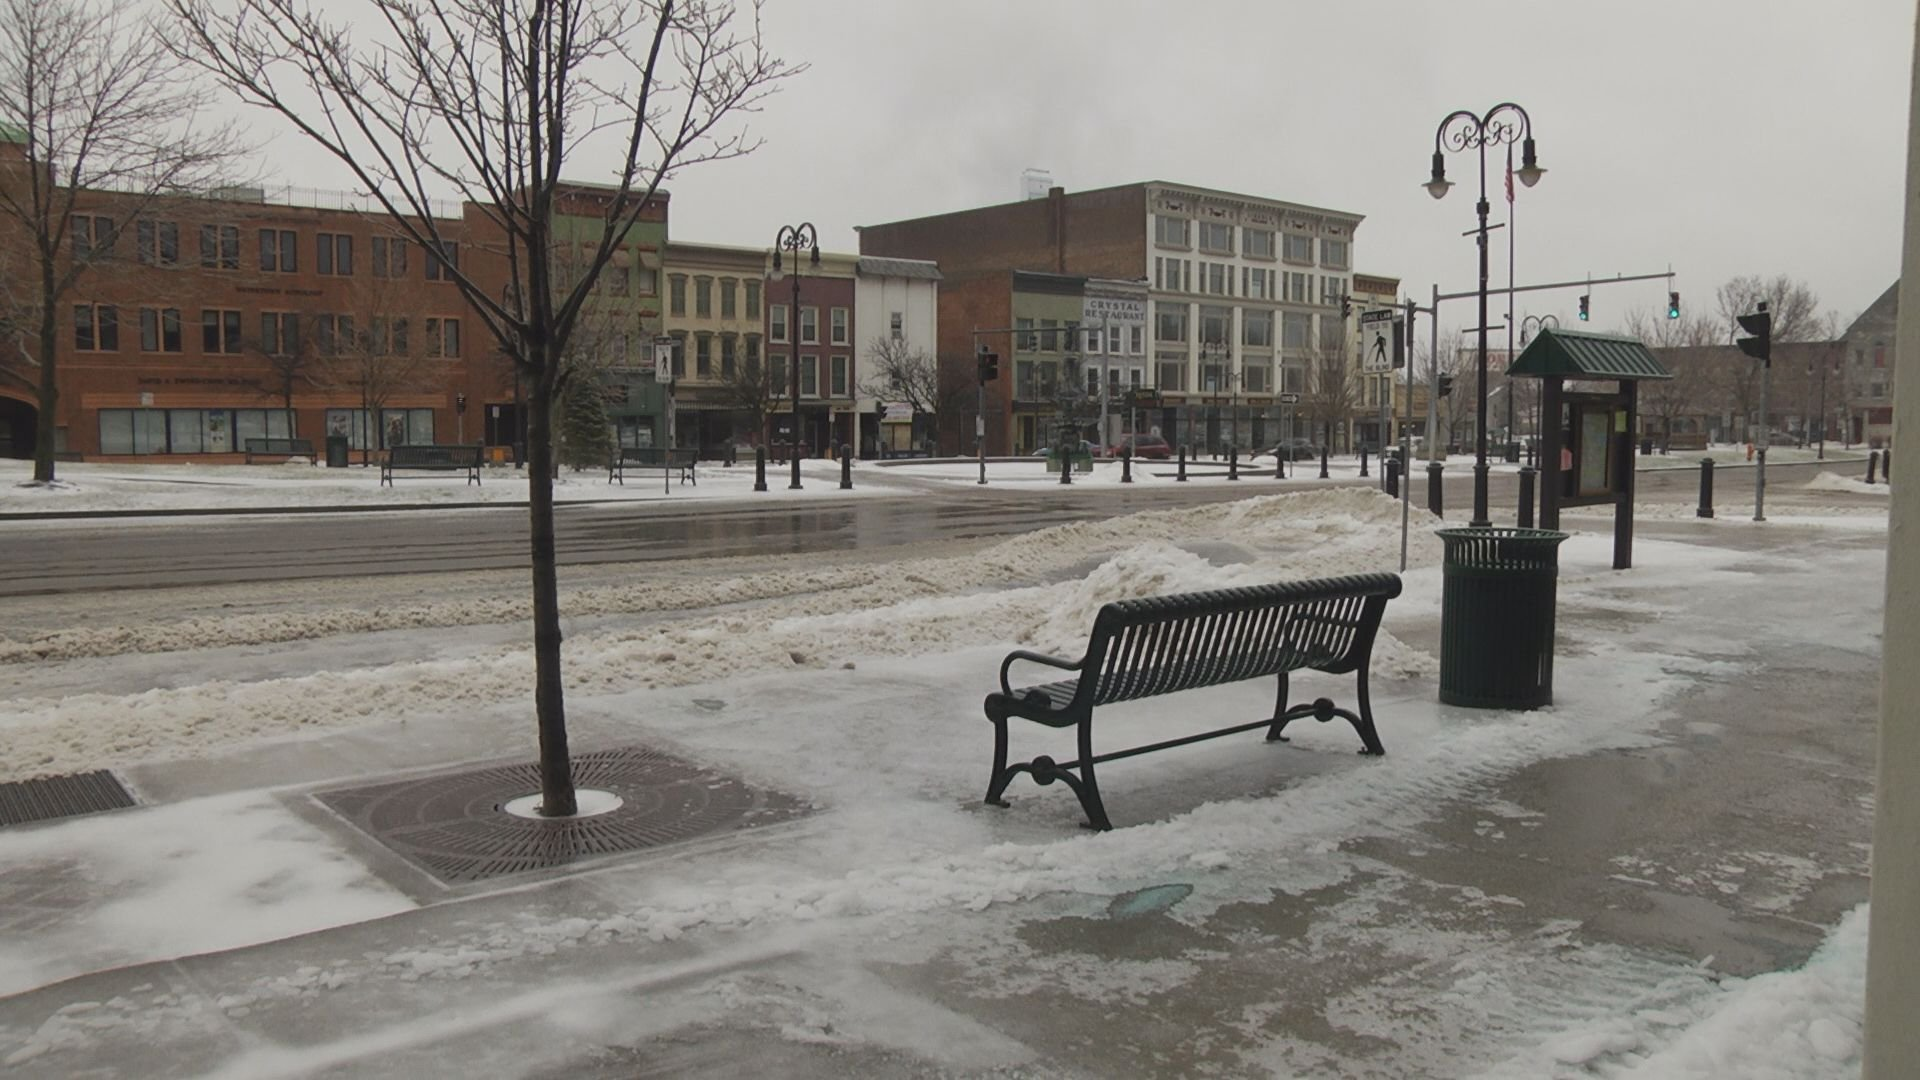 Public Square, Watertown, Sunday morning